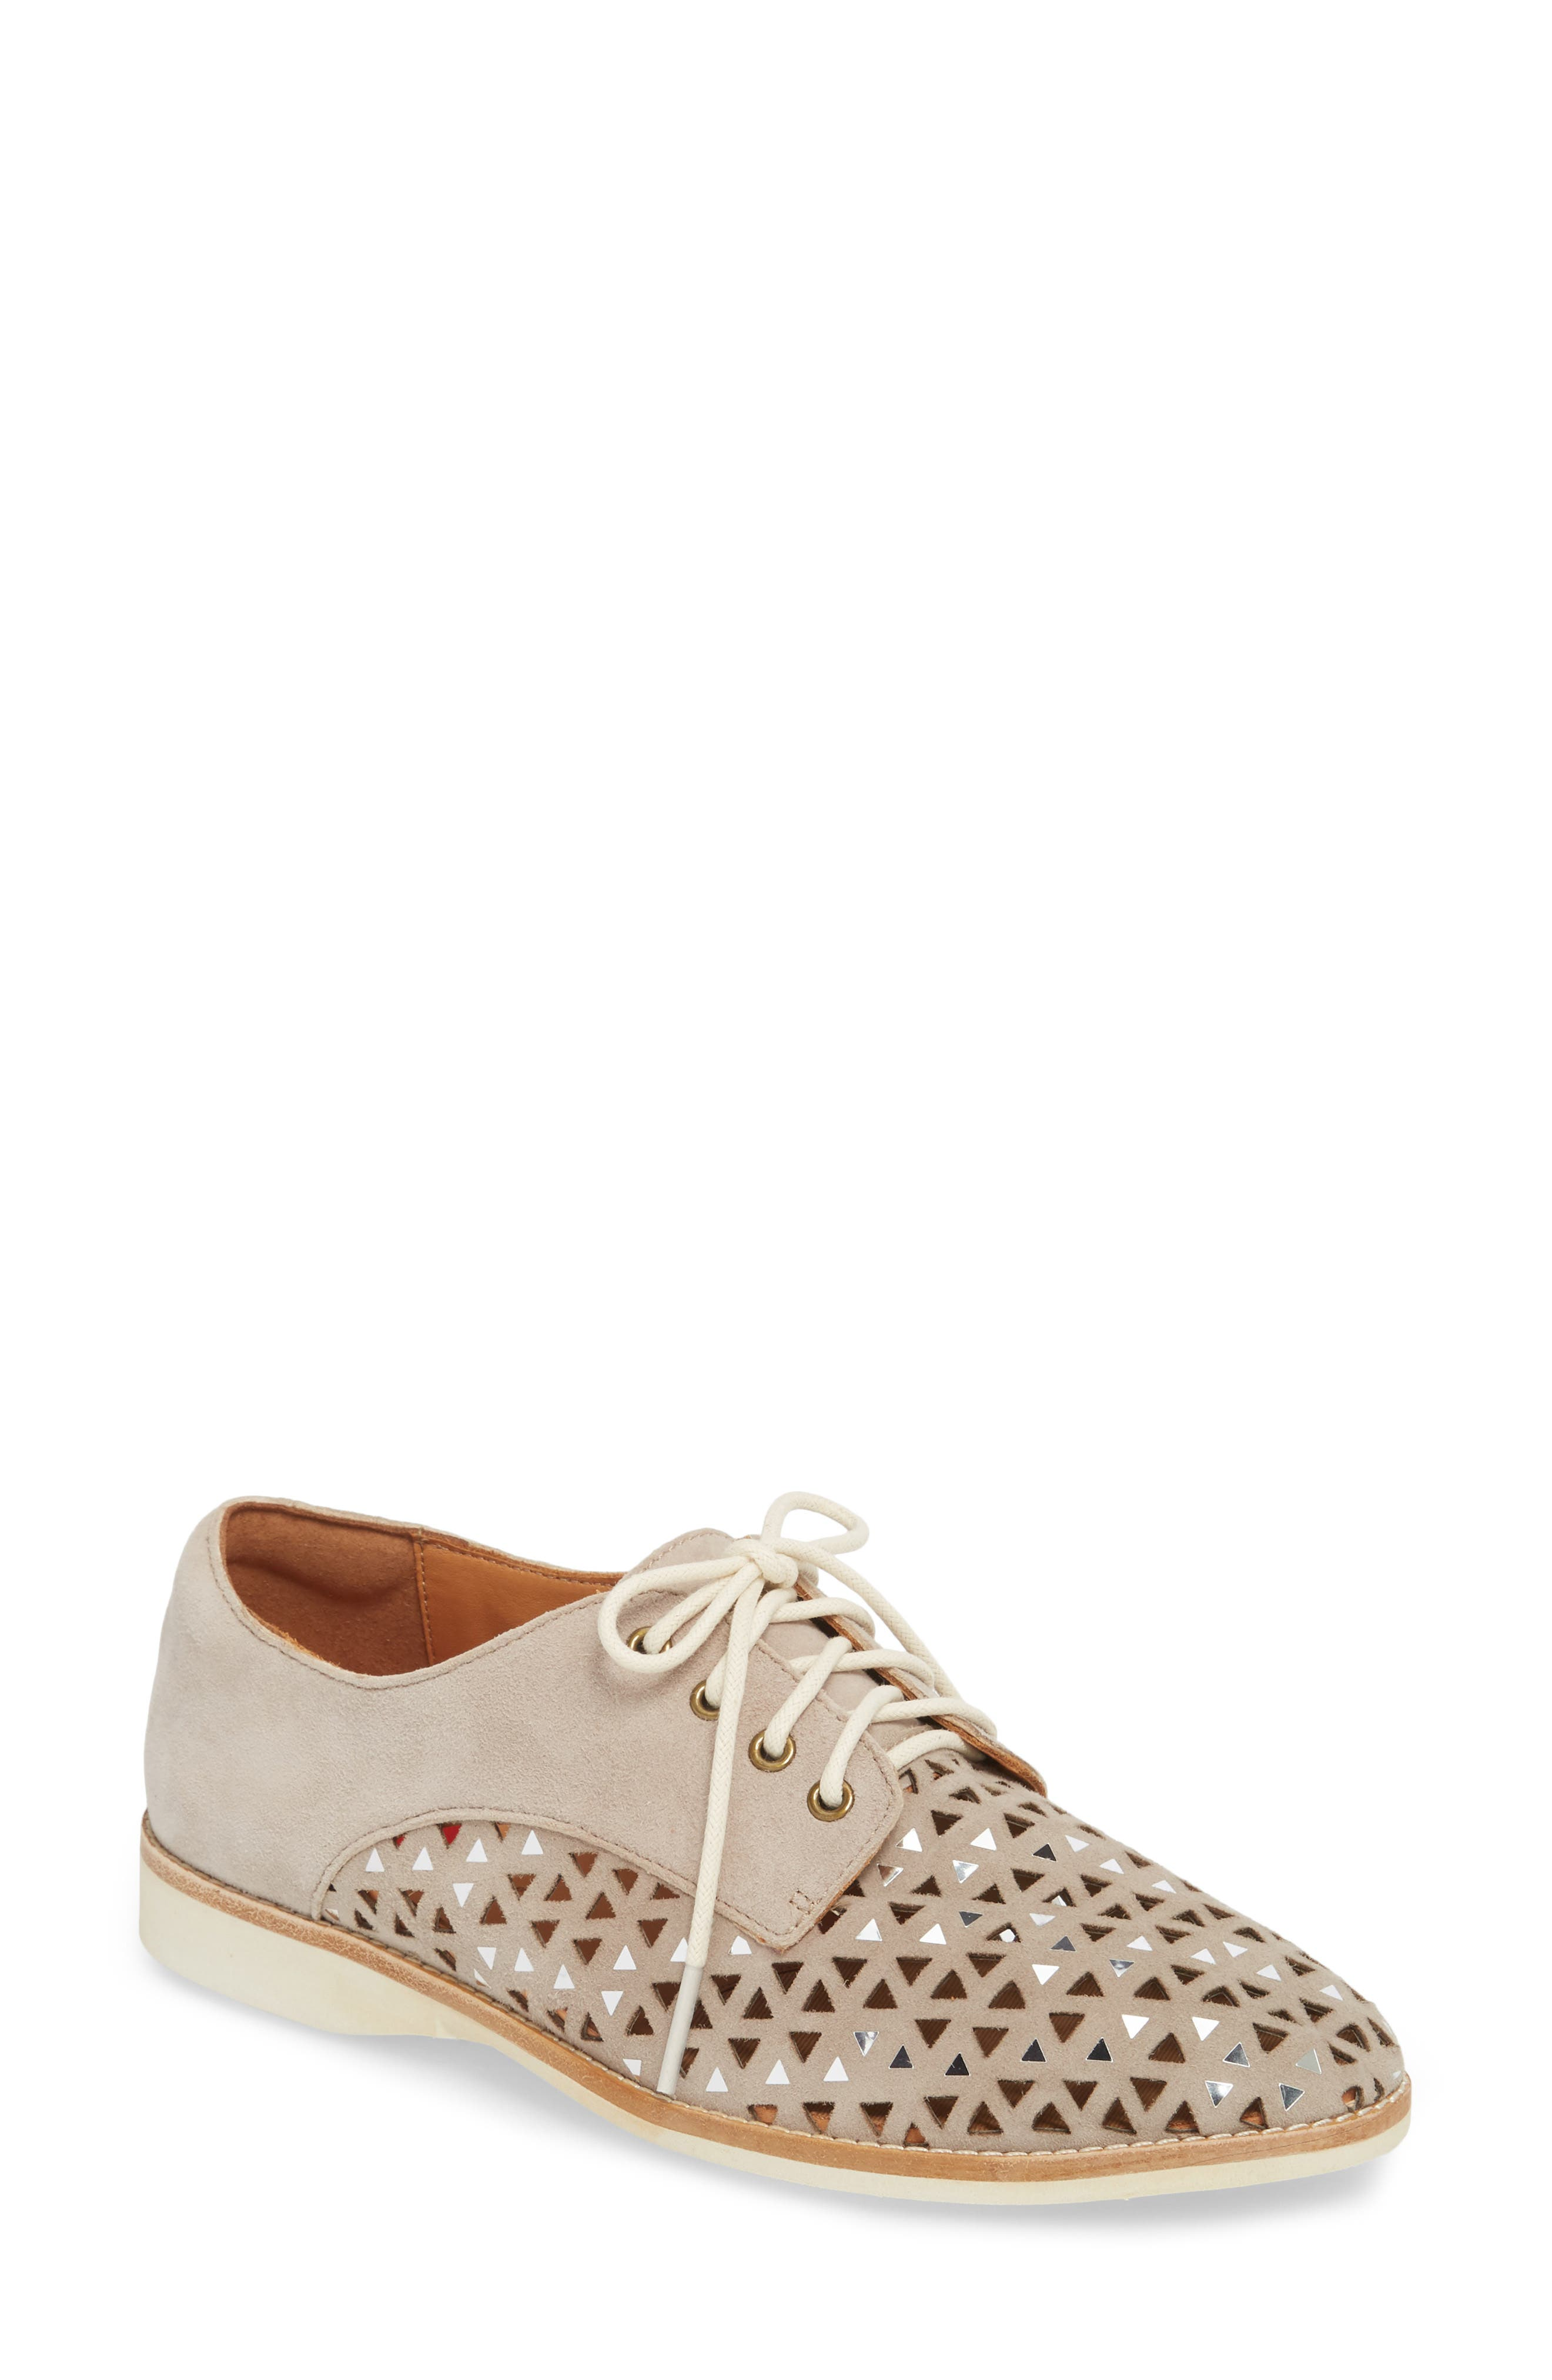 Rollie Women's Triangle Perforated Derby